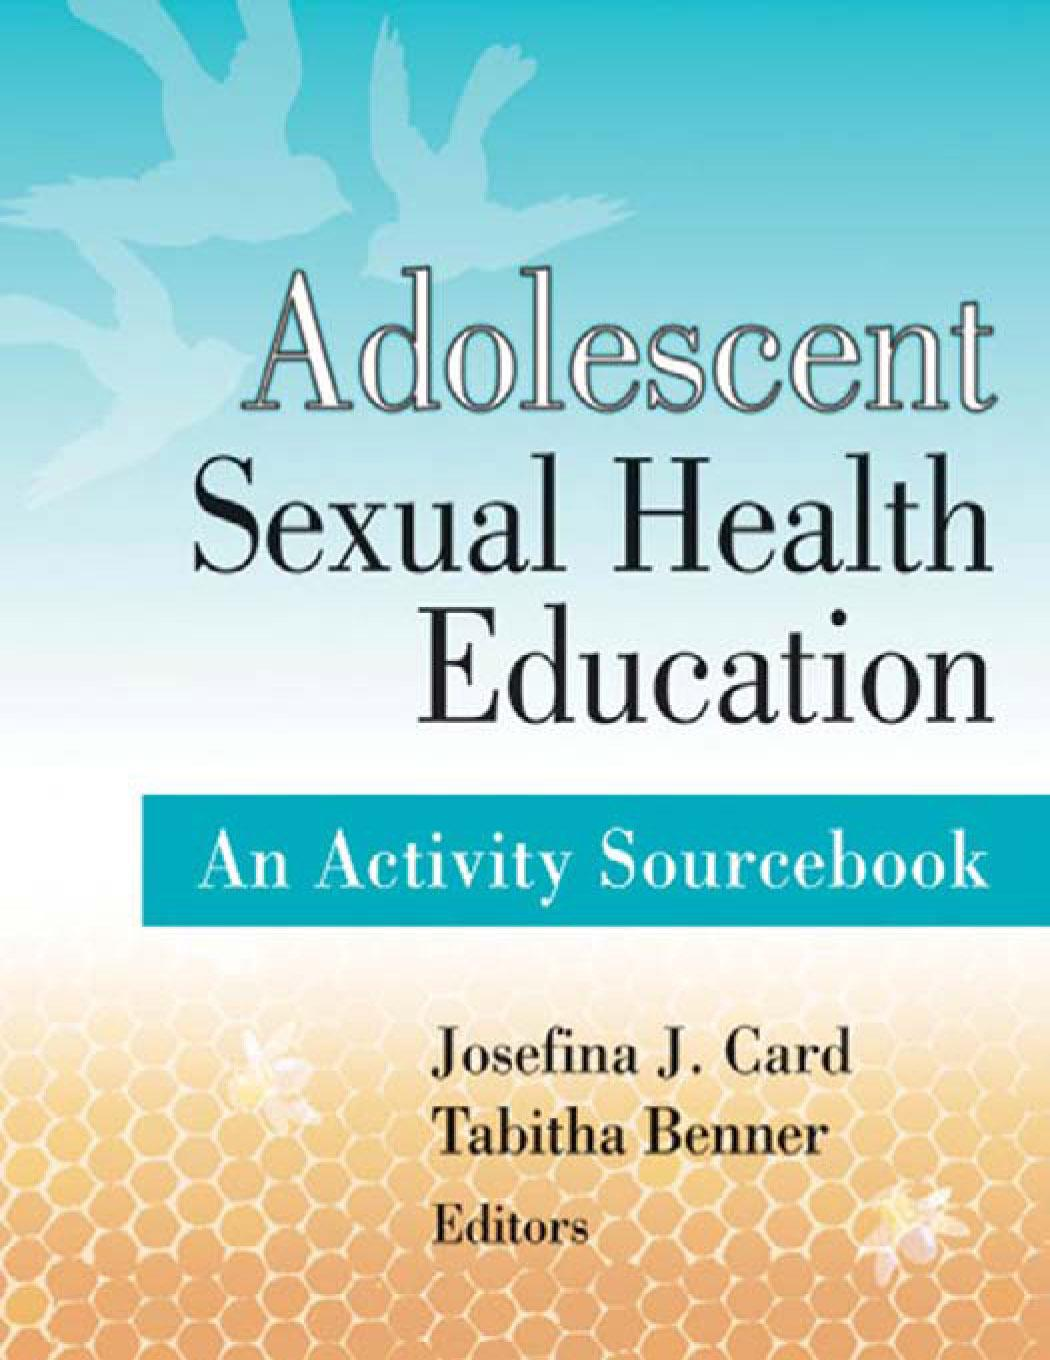 Adolescent Sexual Health Education: An Activity Sourcebook EB9780826197627